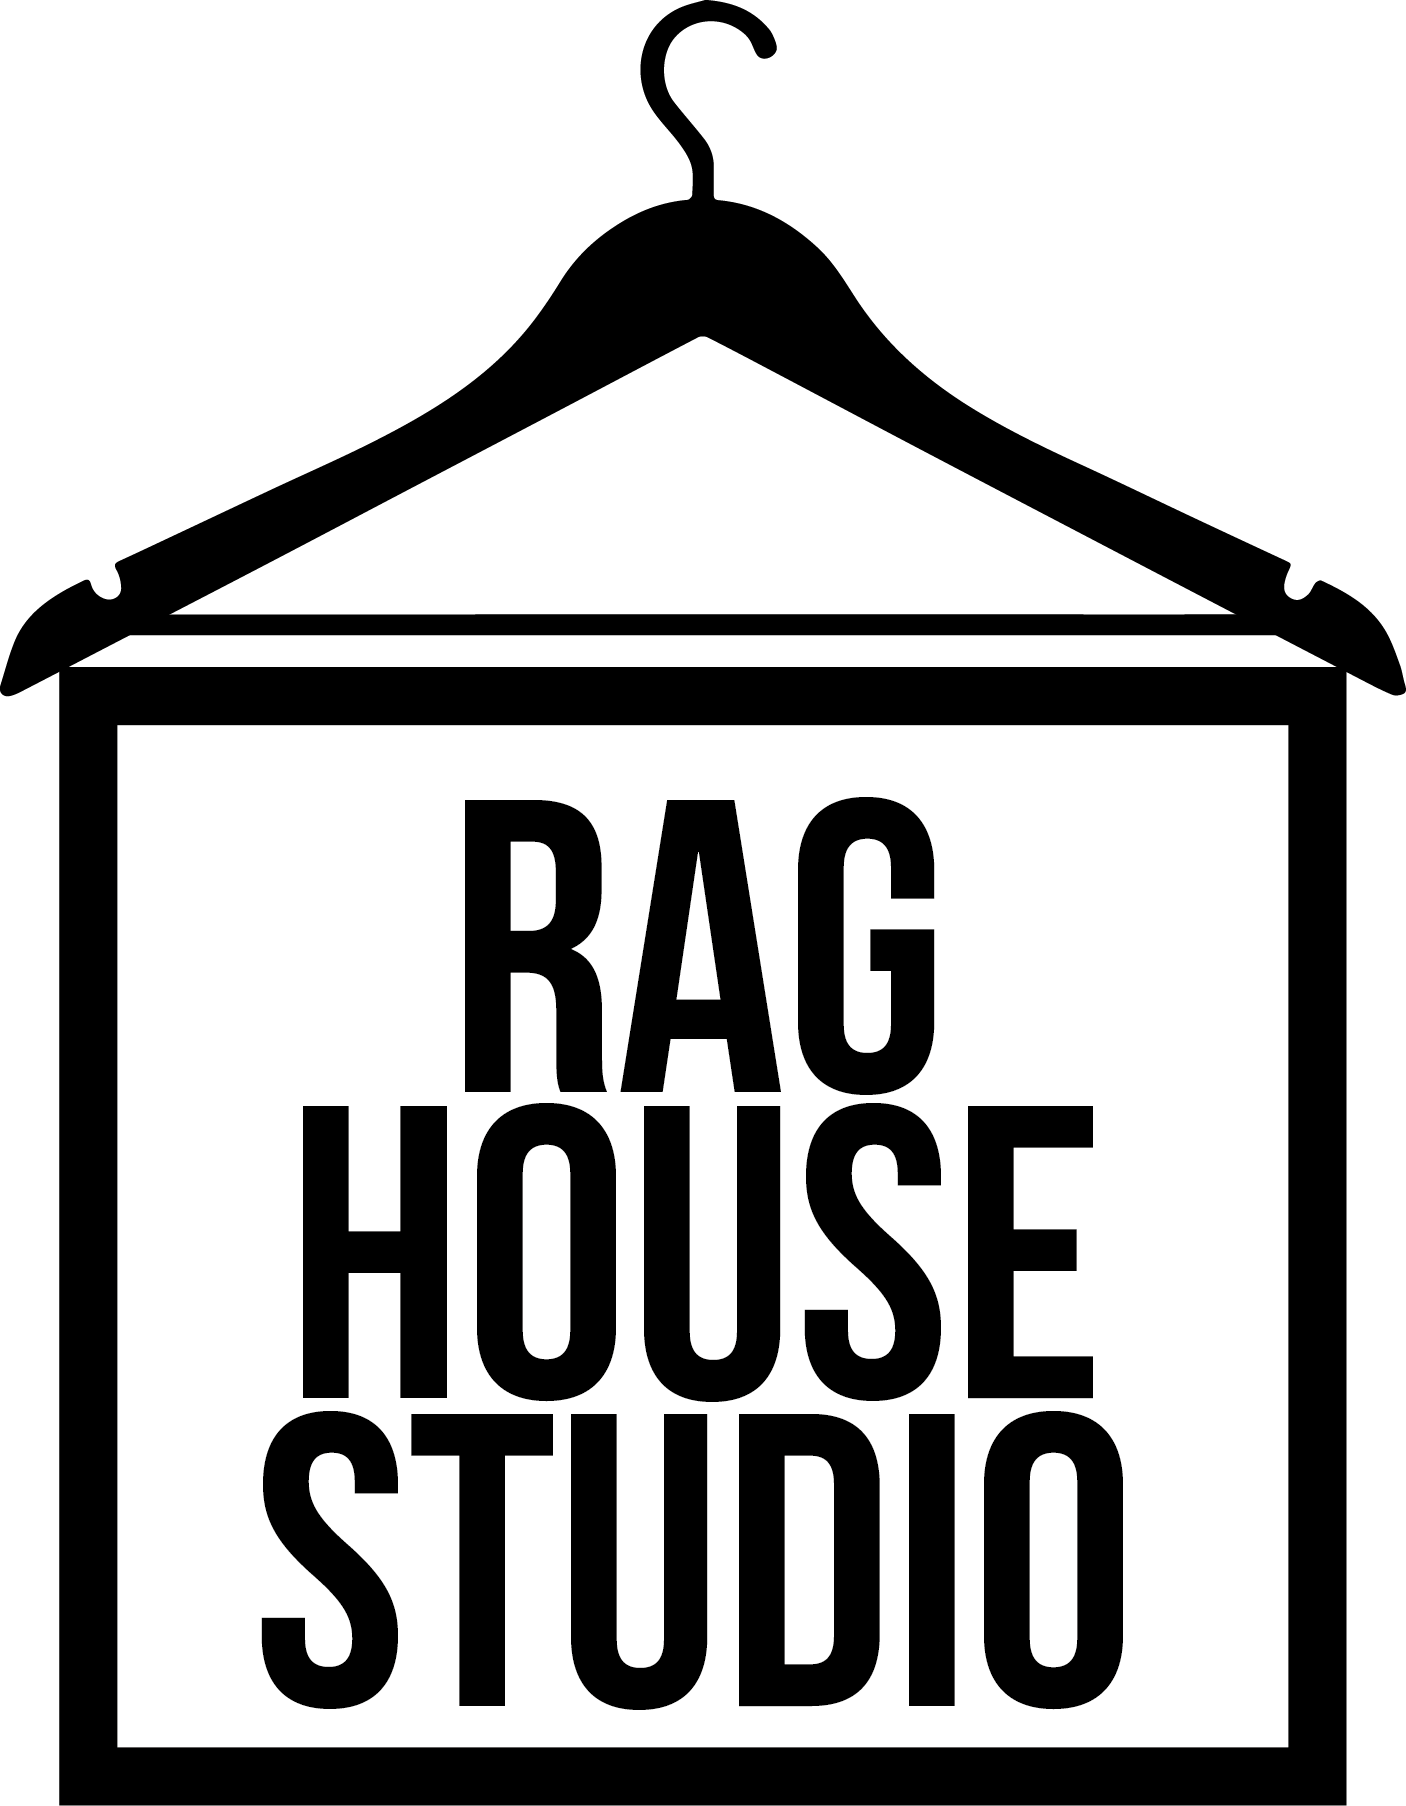 RAG HOUSE STUDIO